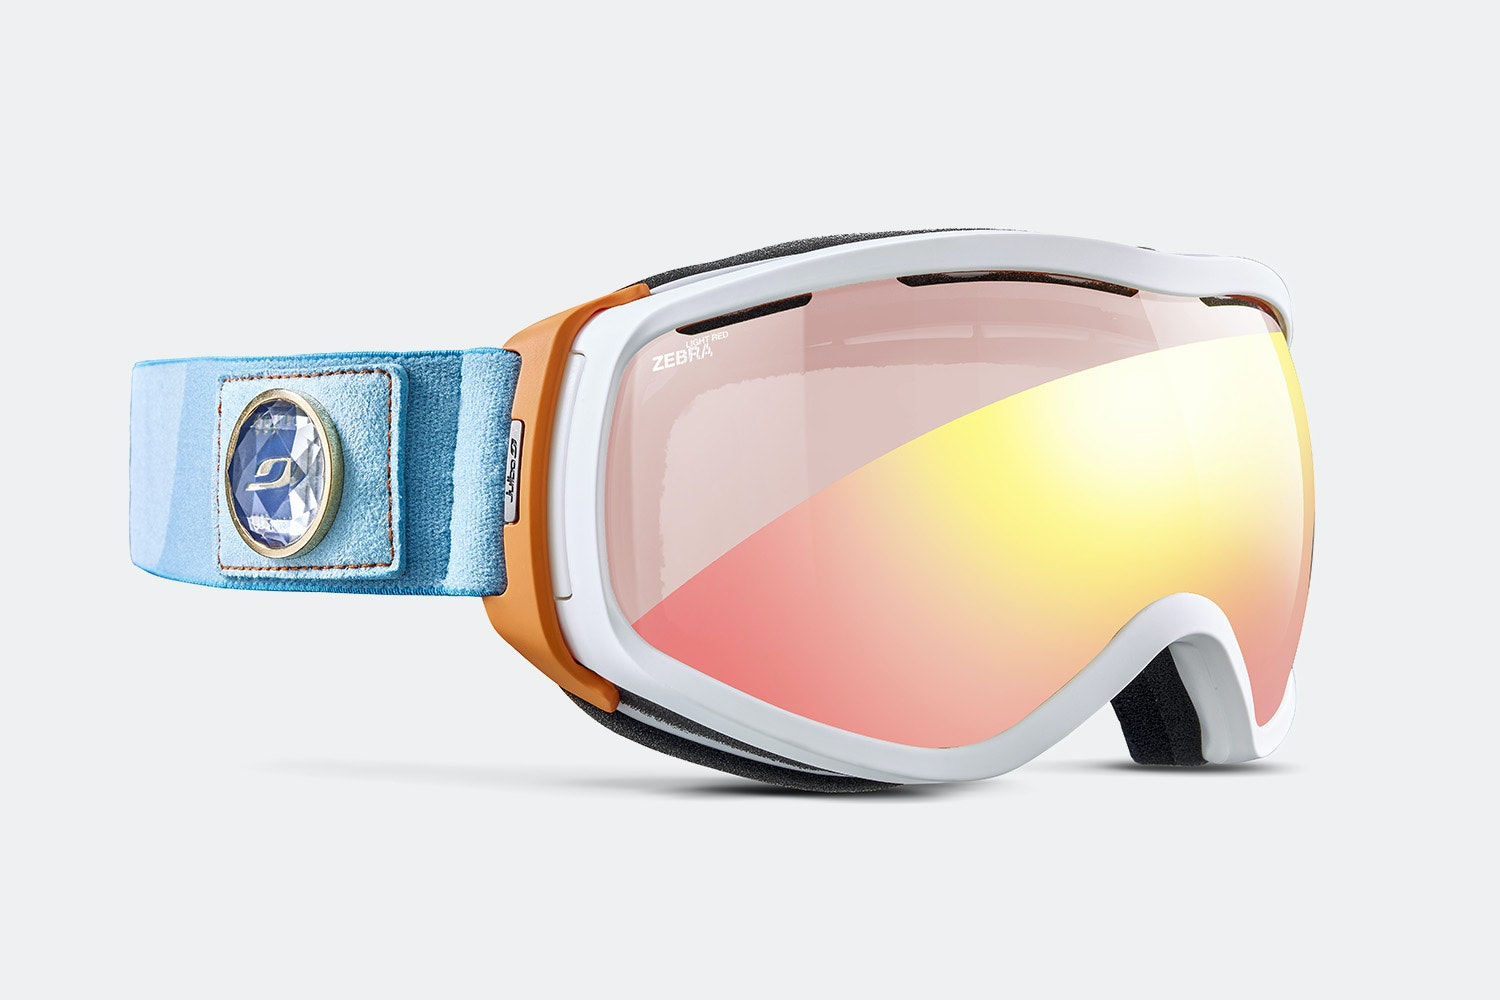 Elara OTG Goggle - White/Orange/Turquoise - Zebra Light Red